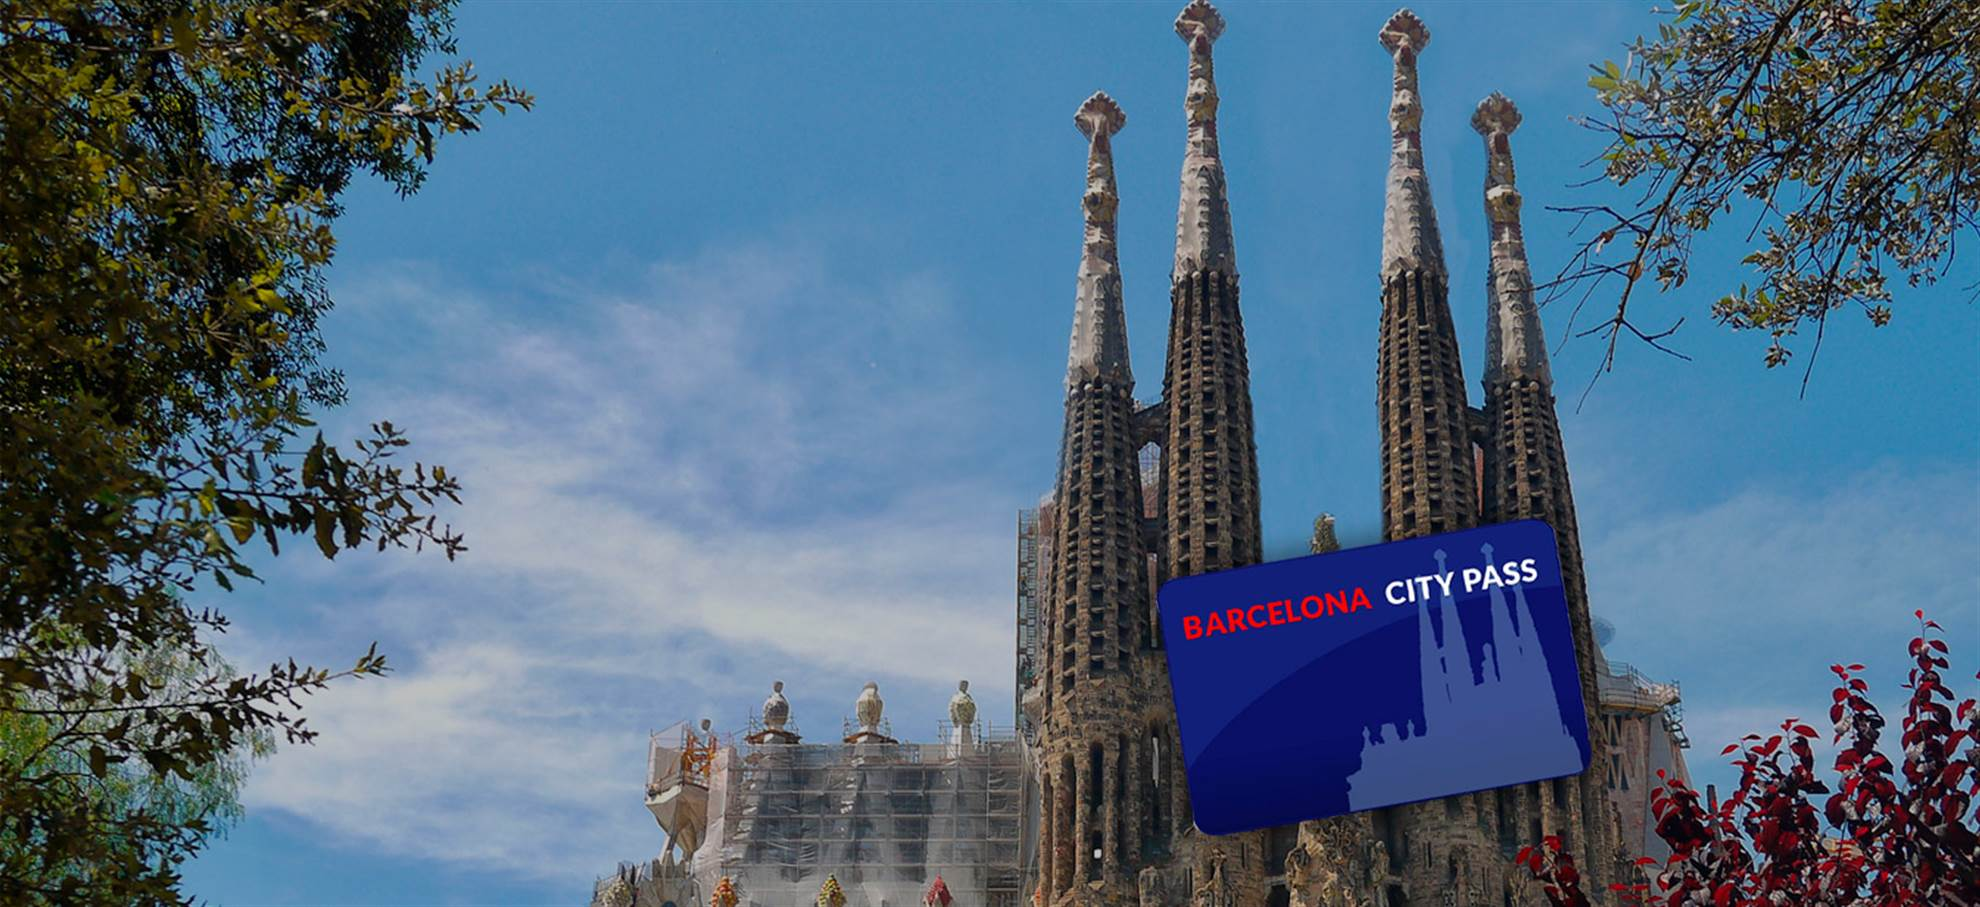 Barcelona City Pass (incl. Sagrada Familia y Parc Güell)